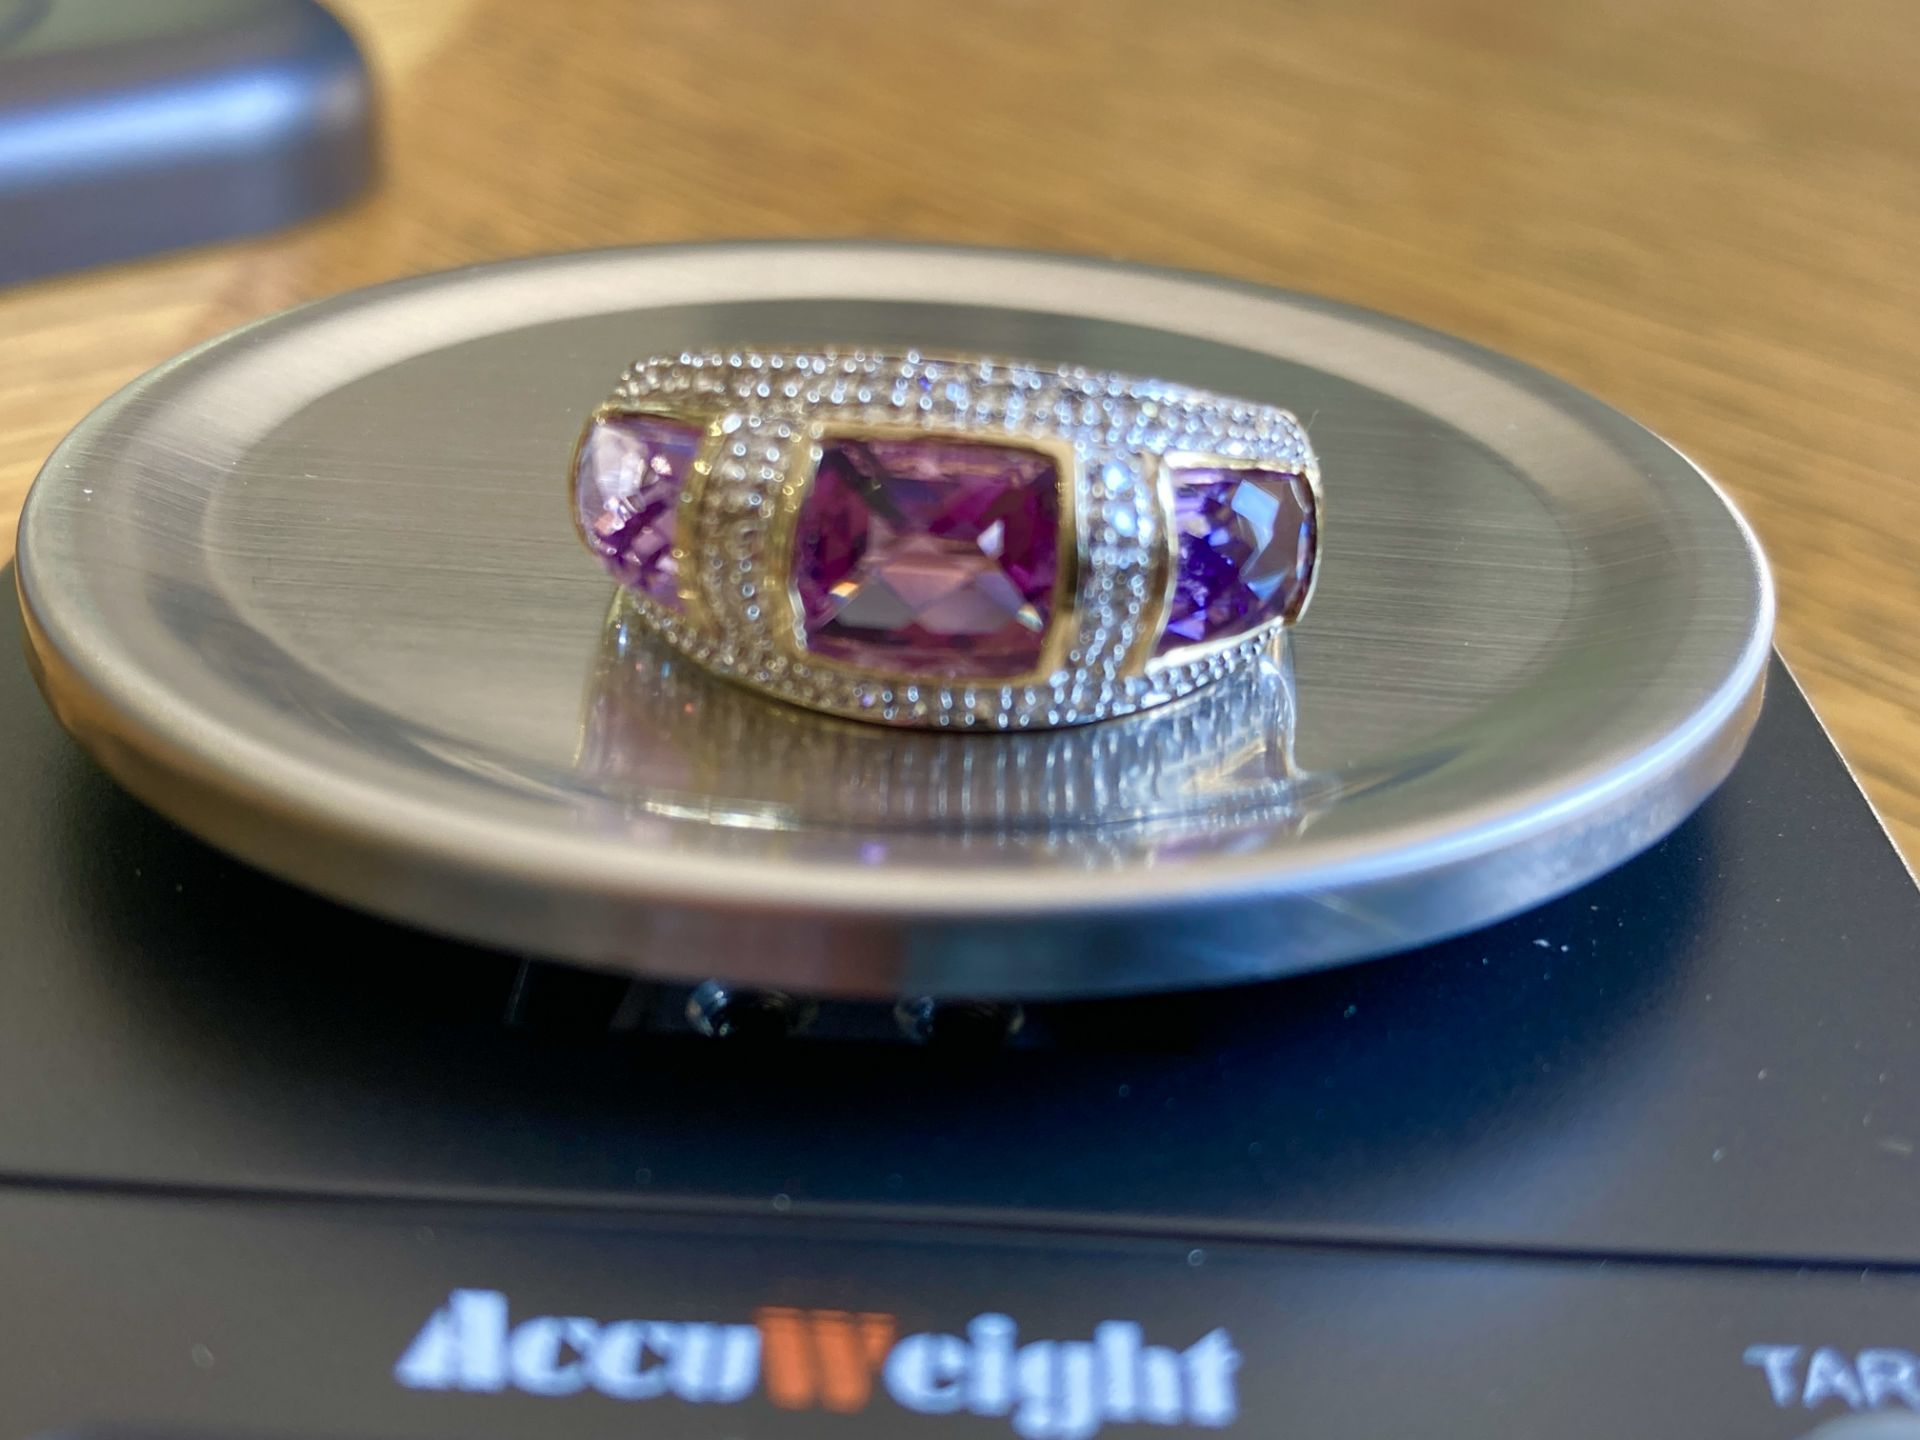 9CT YELLOW GOLD AMETHYST & DIAMOND RING - SIZE: S / WEIGHT: 3.5G - Image 3 of 9